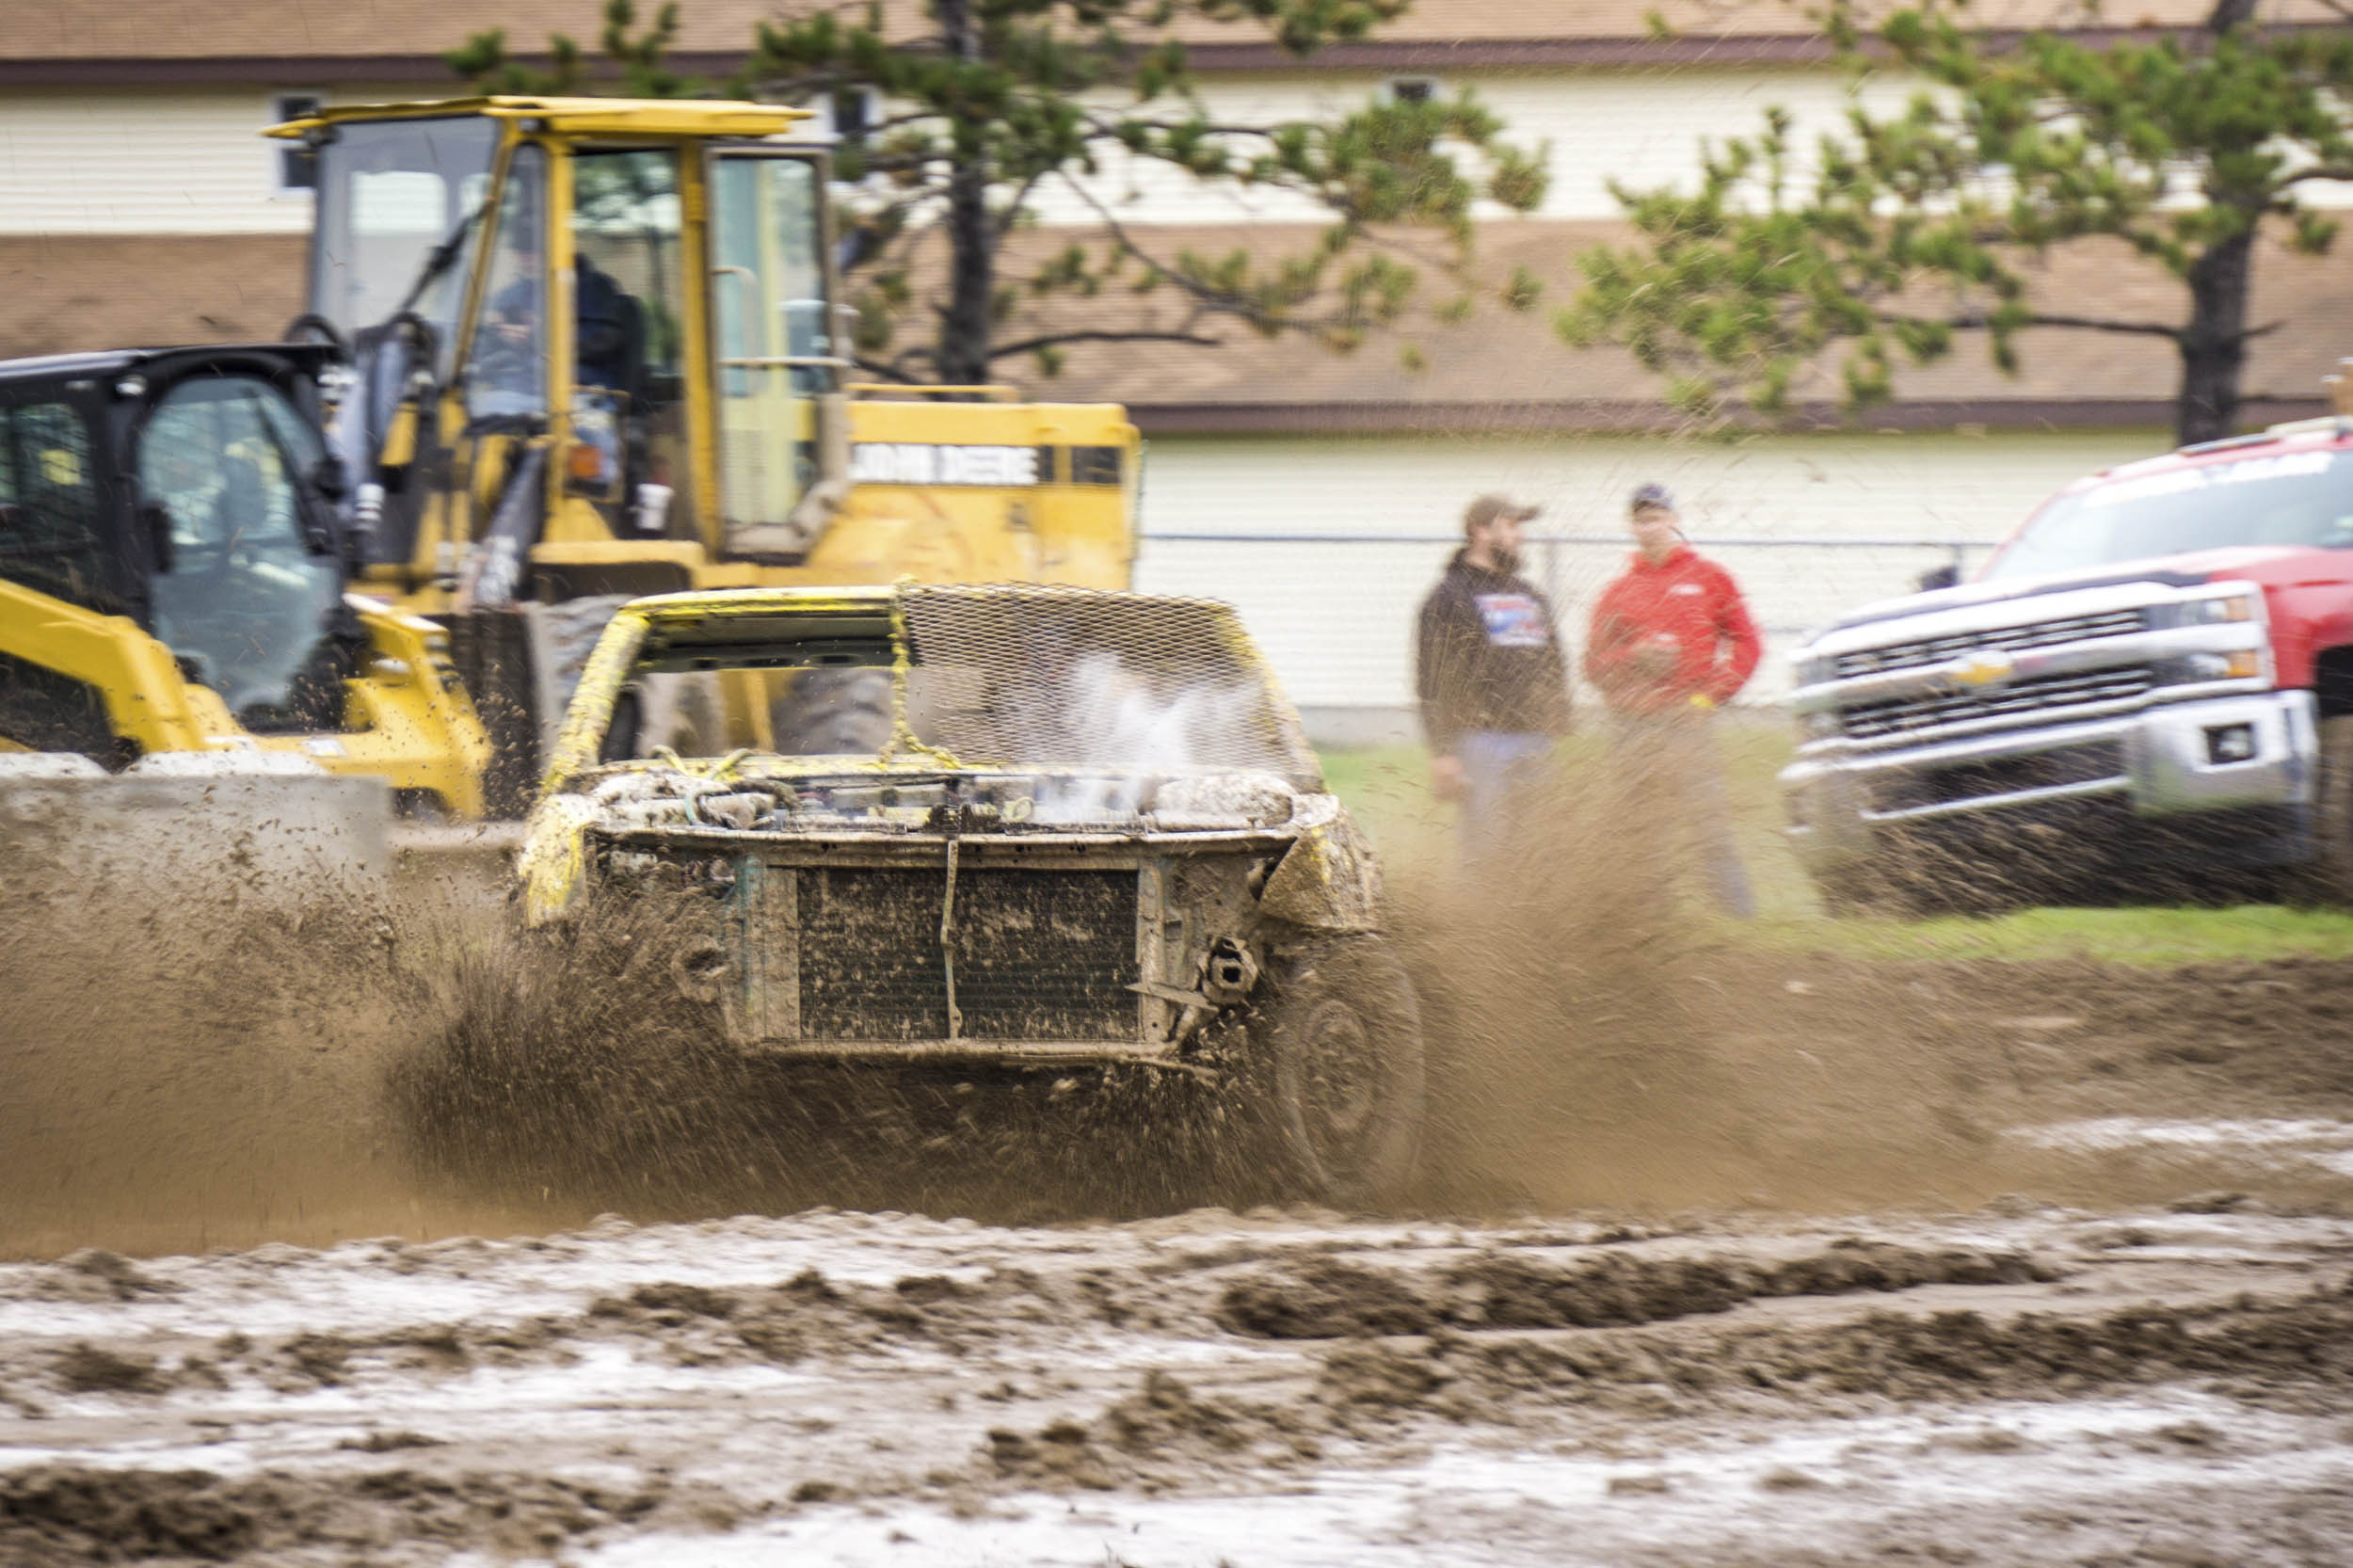 demolition derby bump and run racing in the mud